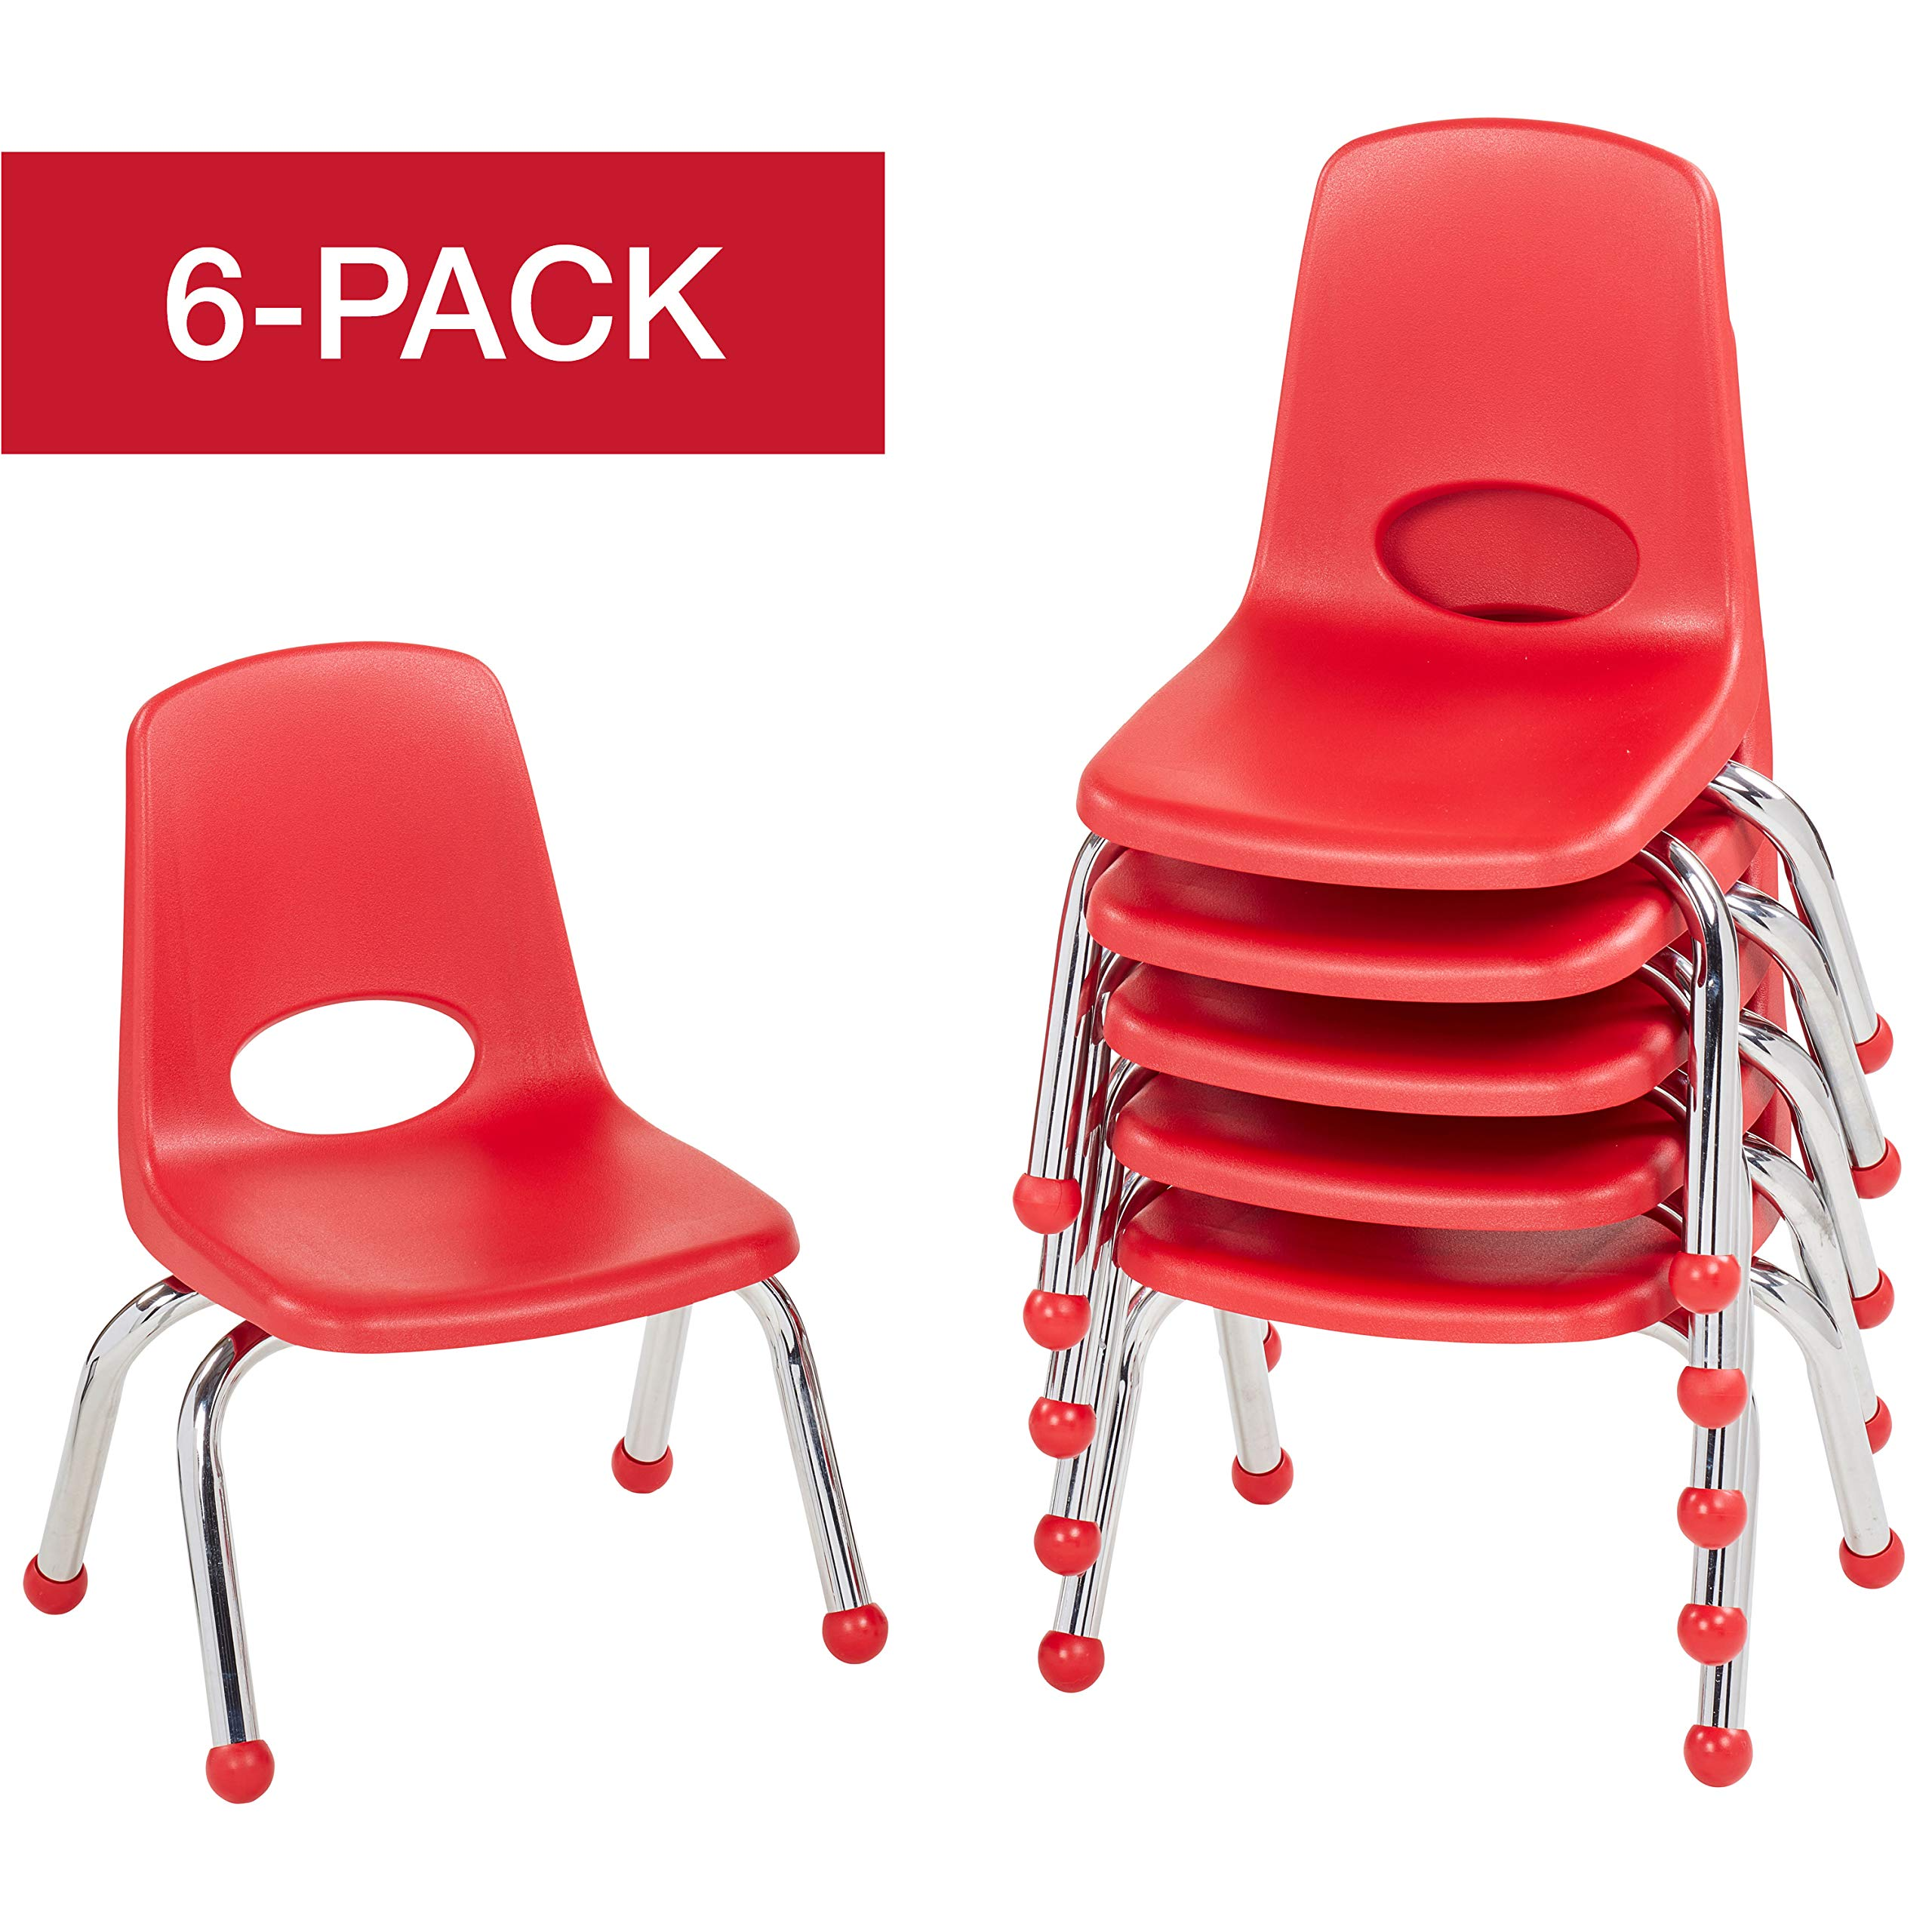 ECR4Kids 10'' School Stack Chair, Chrome Legs with Ball Glides, Red (6-Pack)